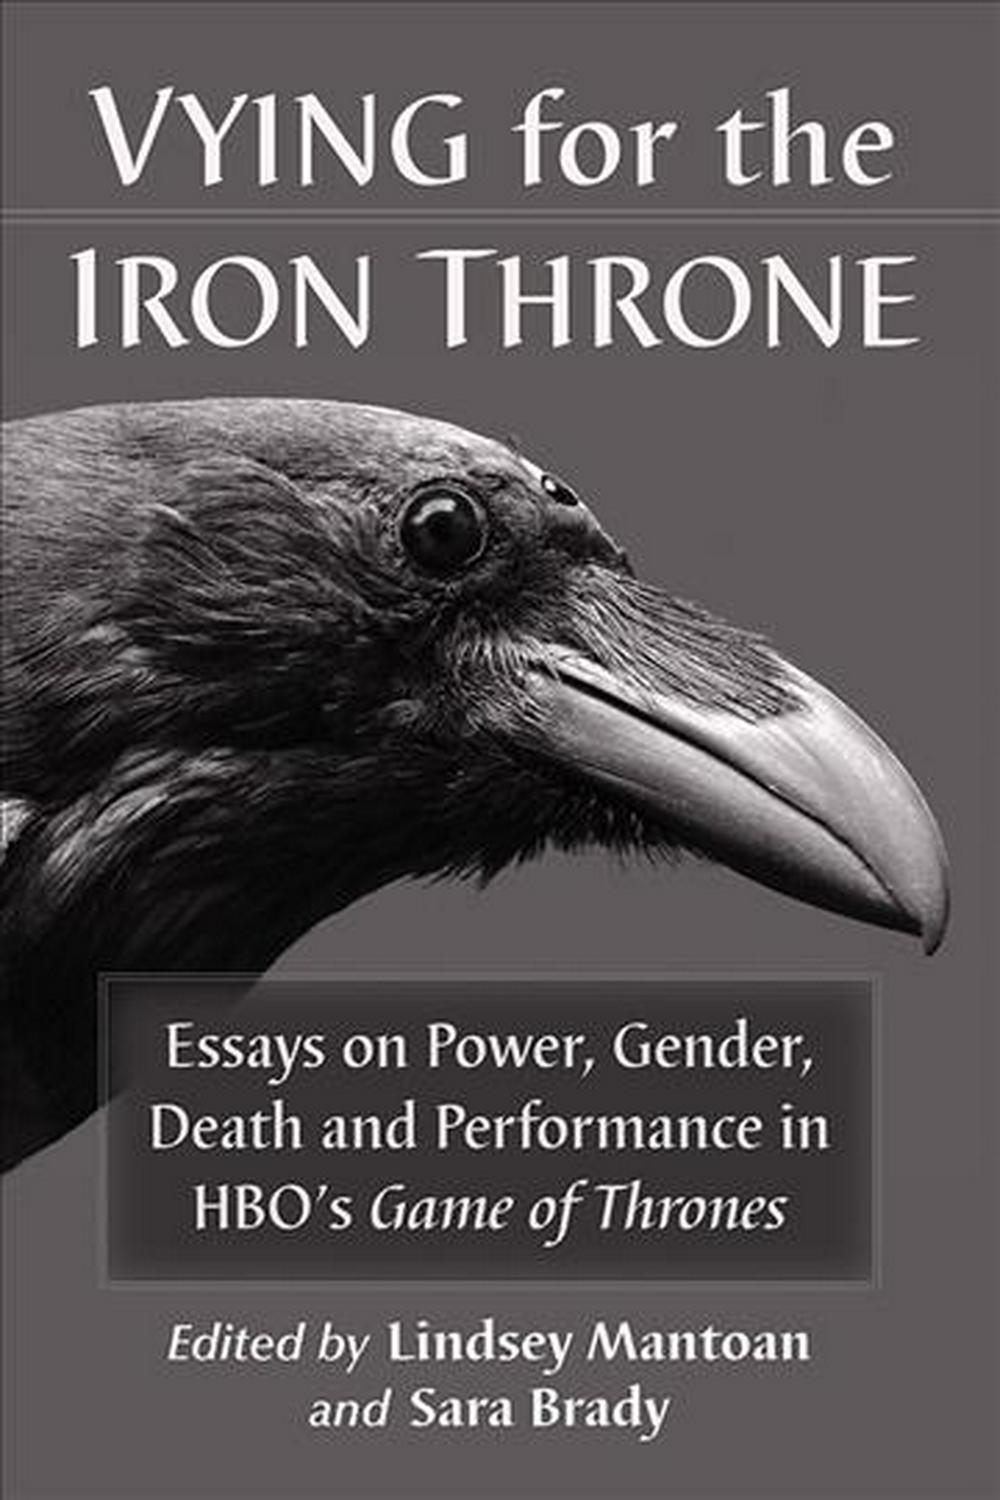 Vying for the Iron ThroneEssays on Power, Gender, Death and Performance ... by Lindsey Mantoan (editor) & Sara Brady (editor), ISBN: 9781476674261